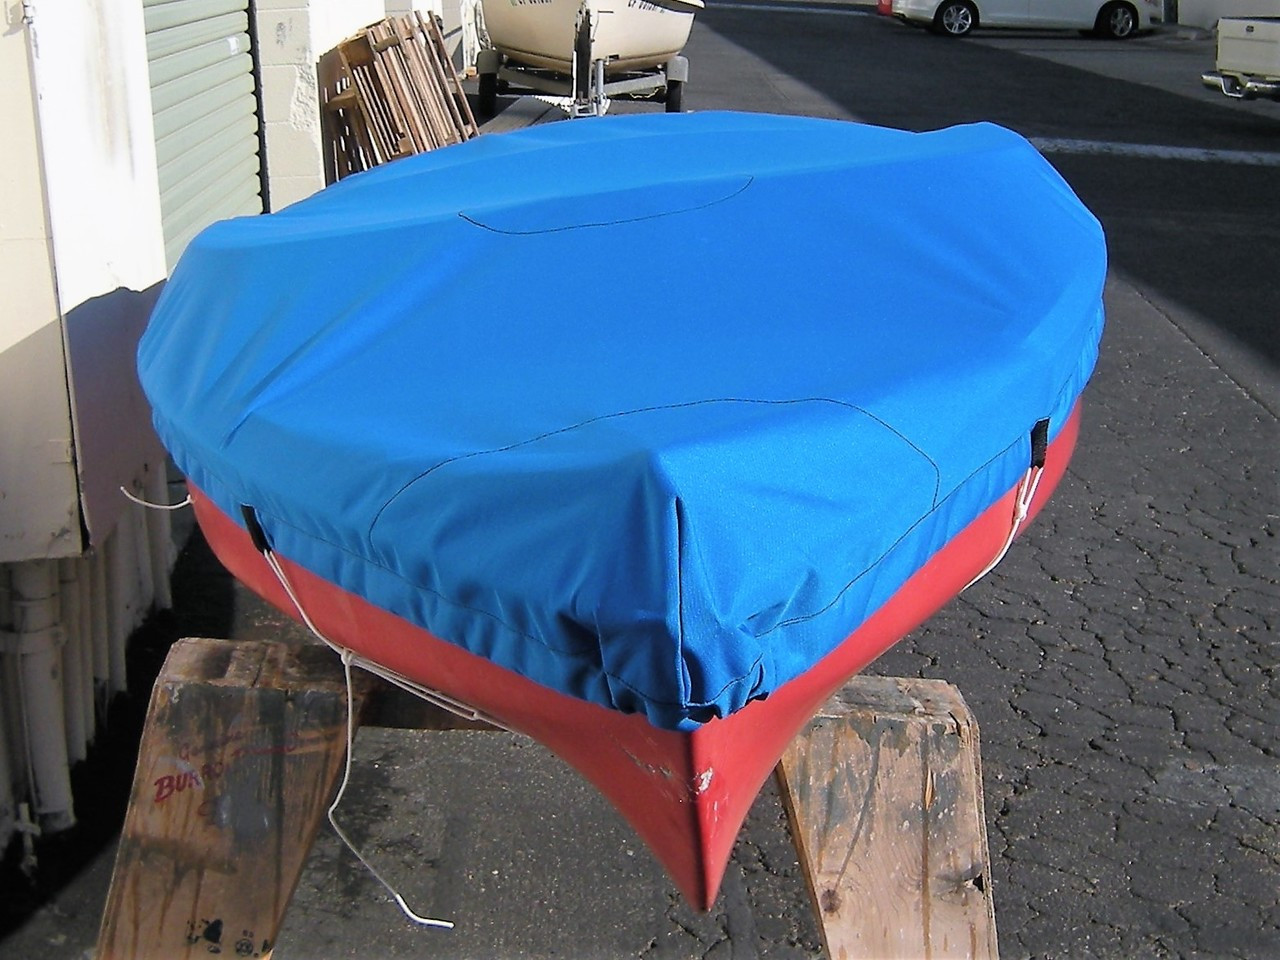 SeaGull Sailboat Top Cover made in America by skilled artisans at SLO Sail and Canvas.